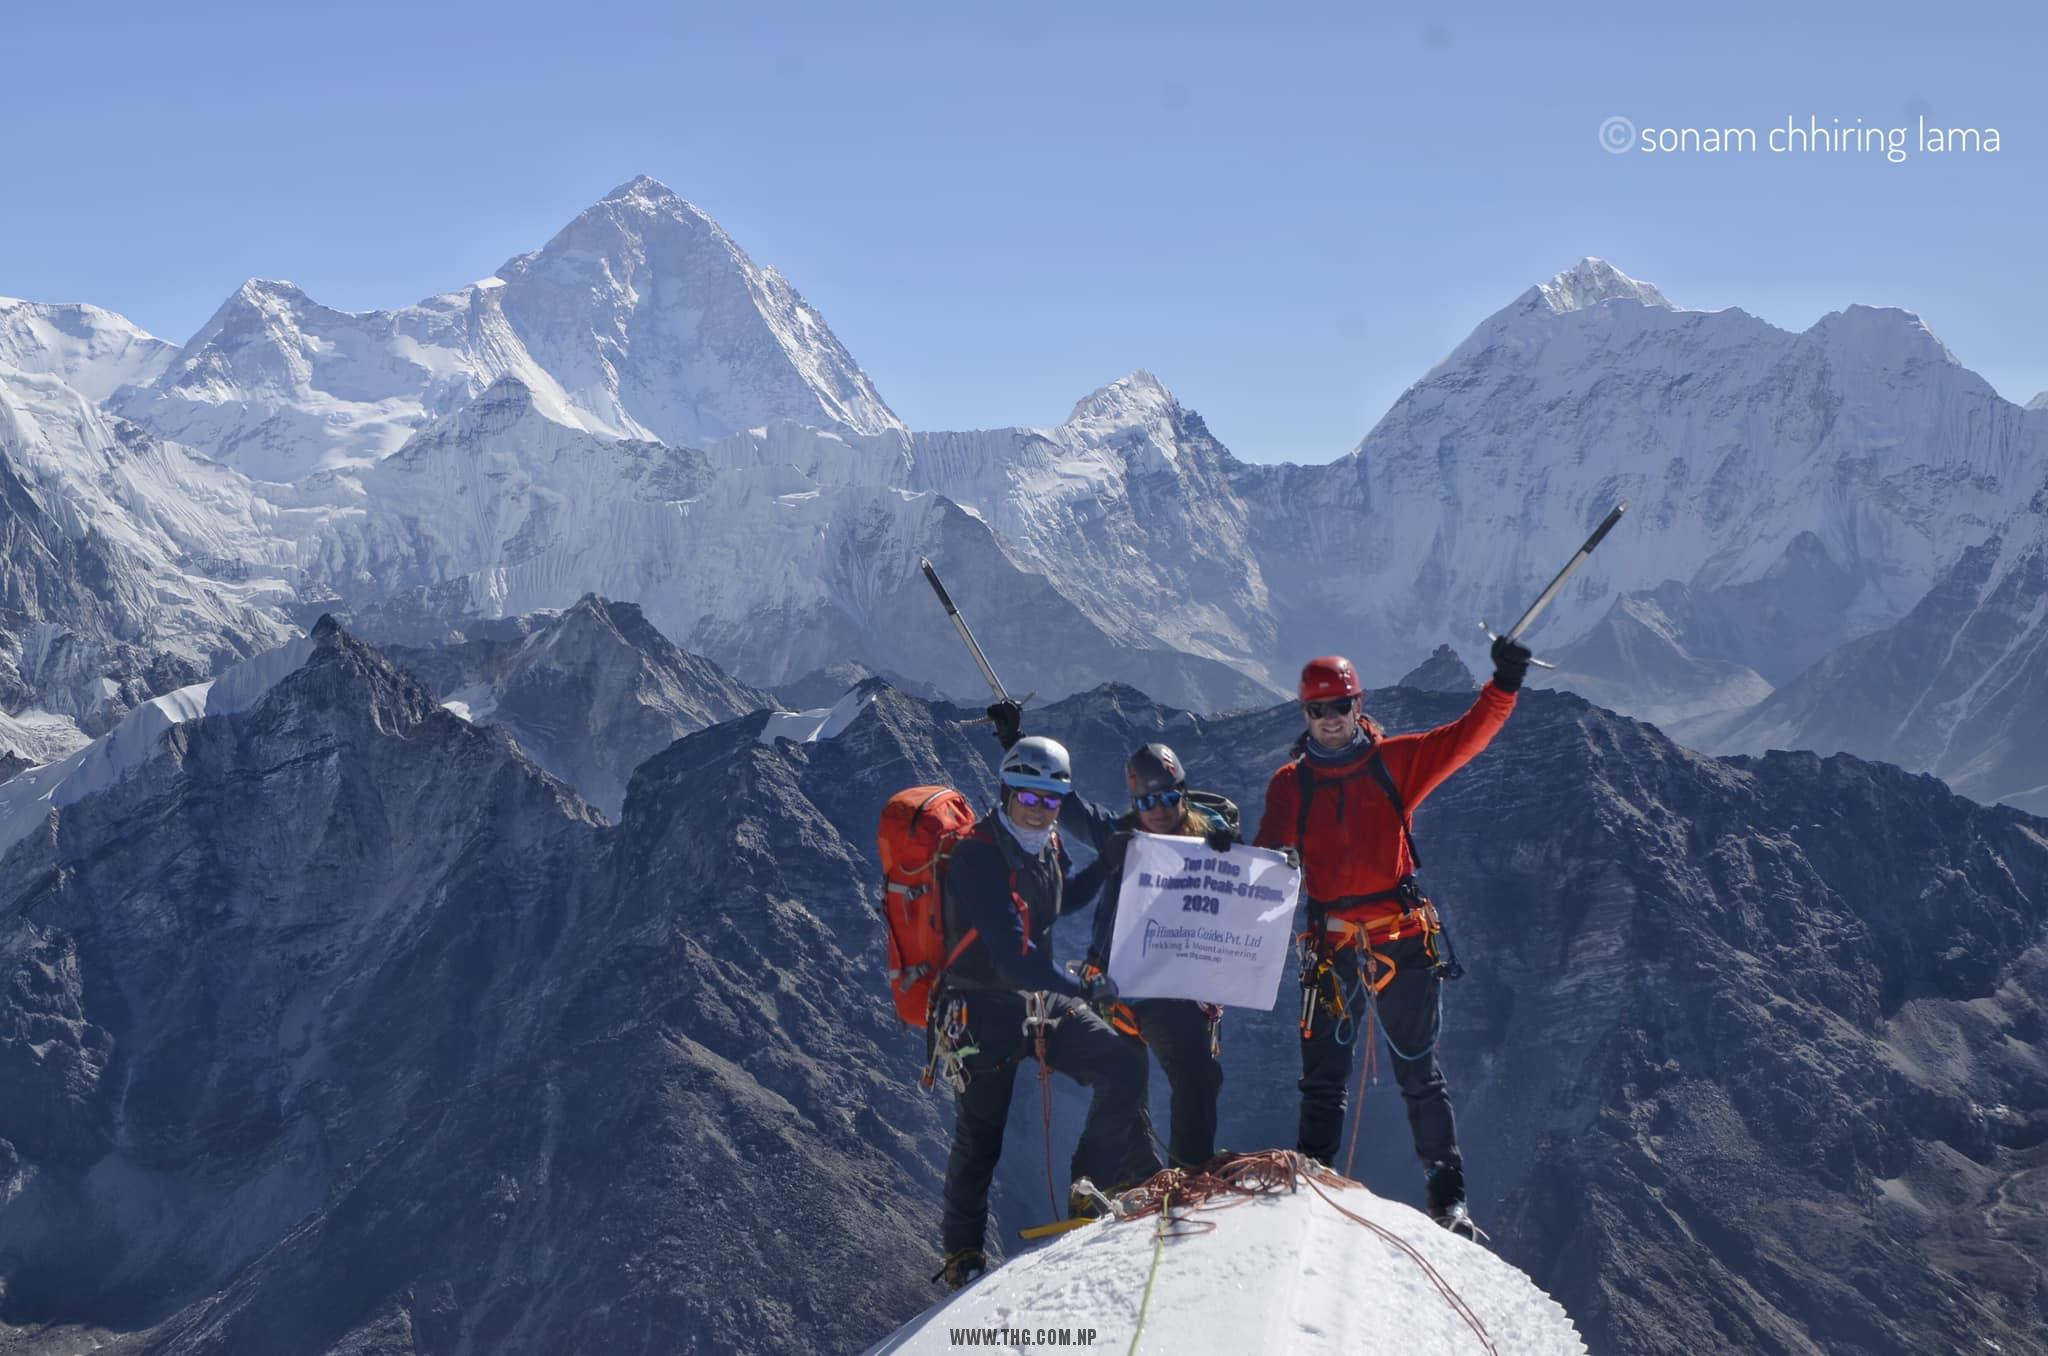 Himalaya 5 peaks with Technical Climbing + Ama Dablam Expedition 2020